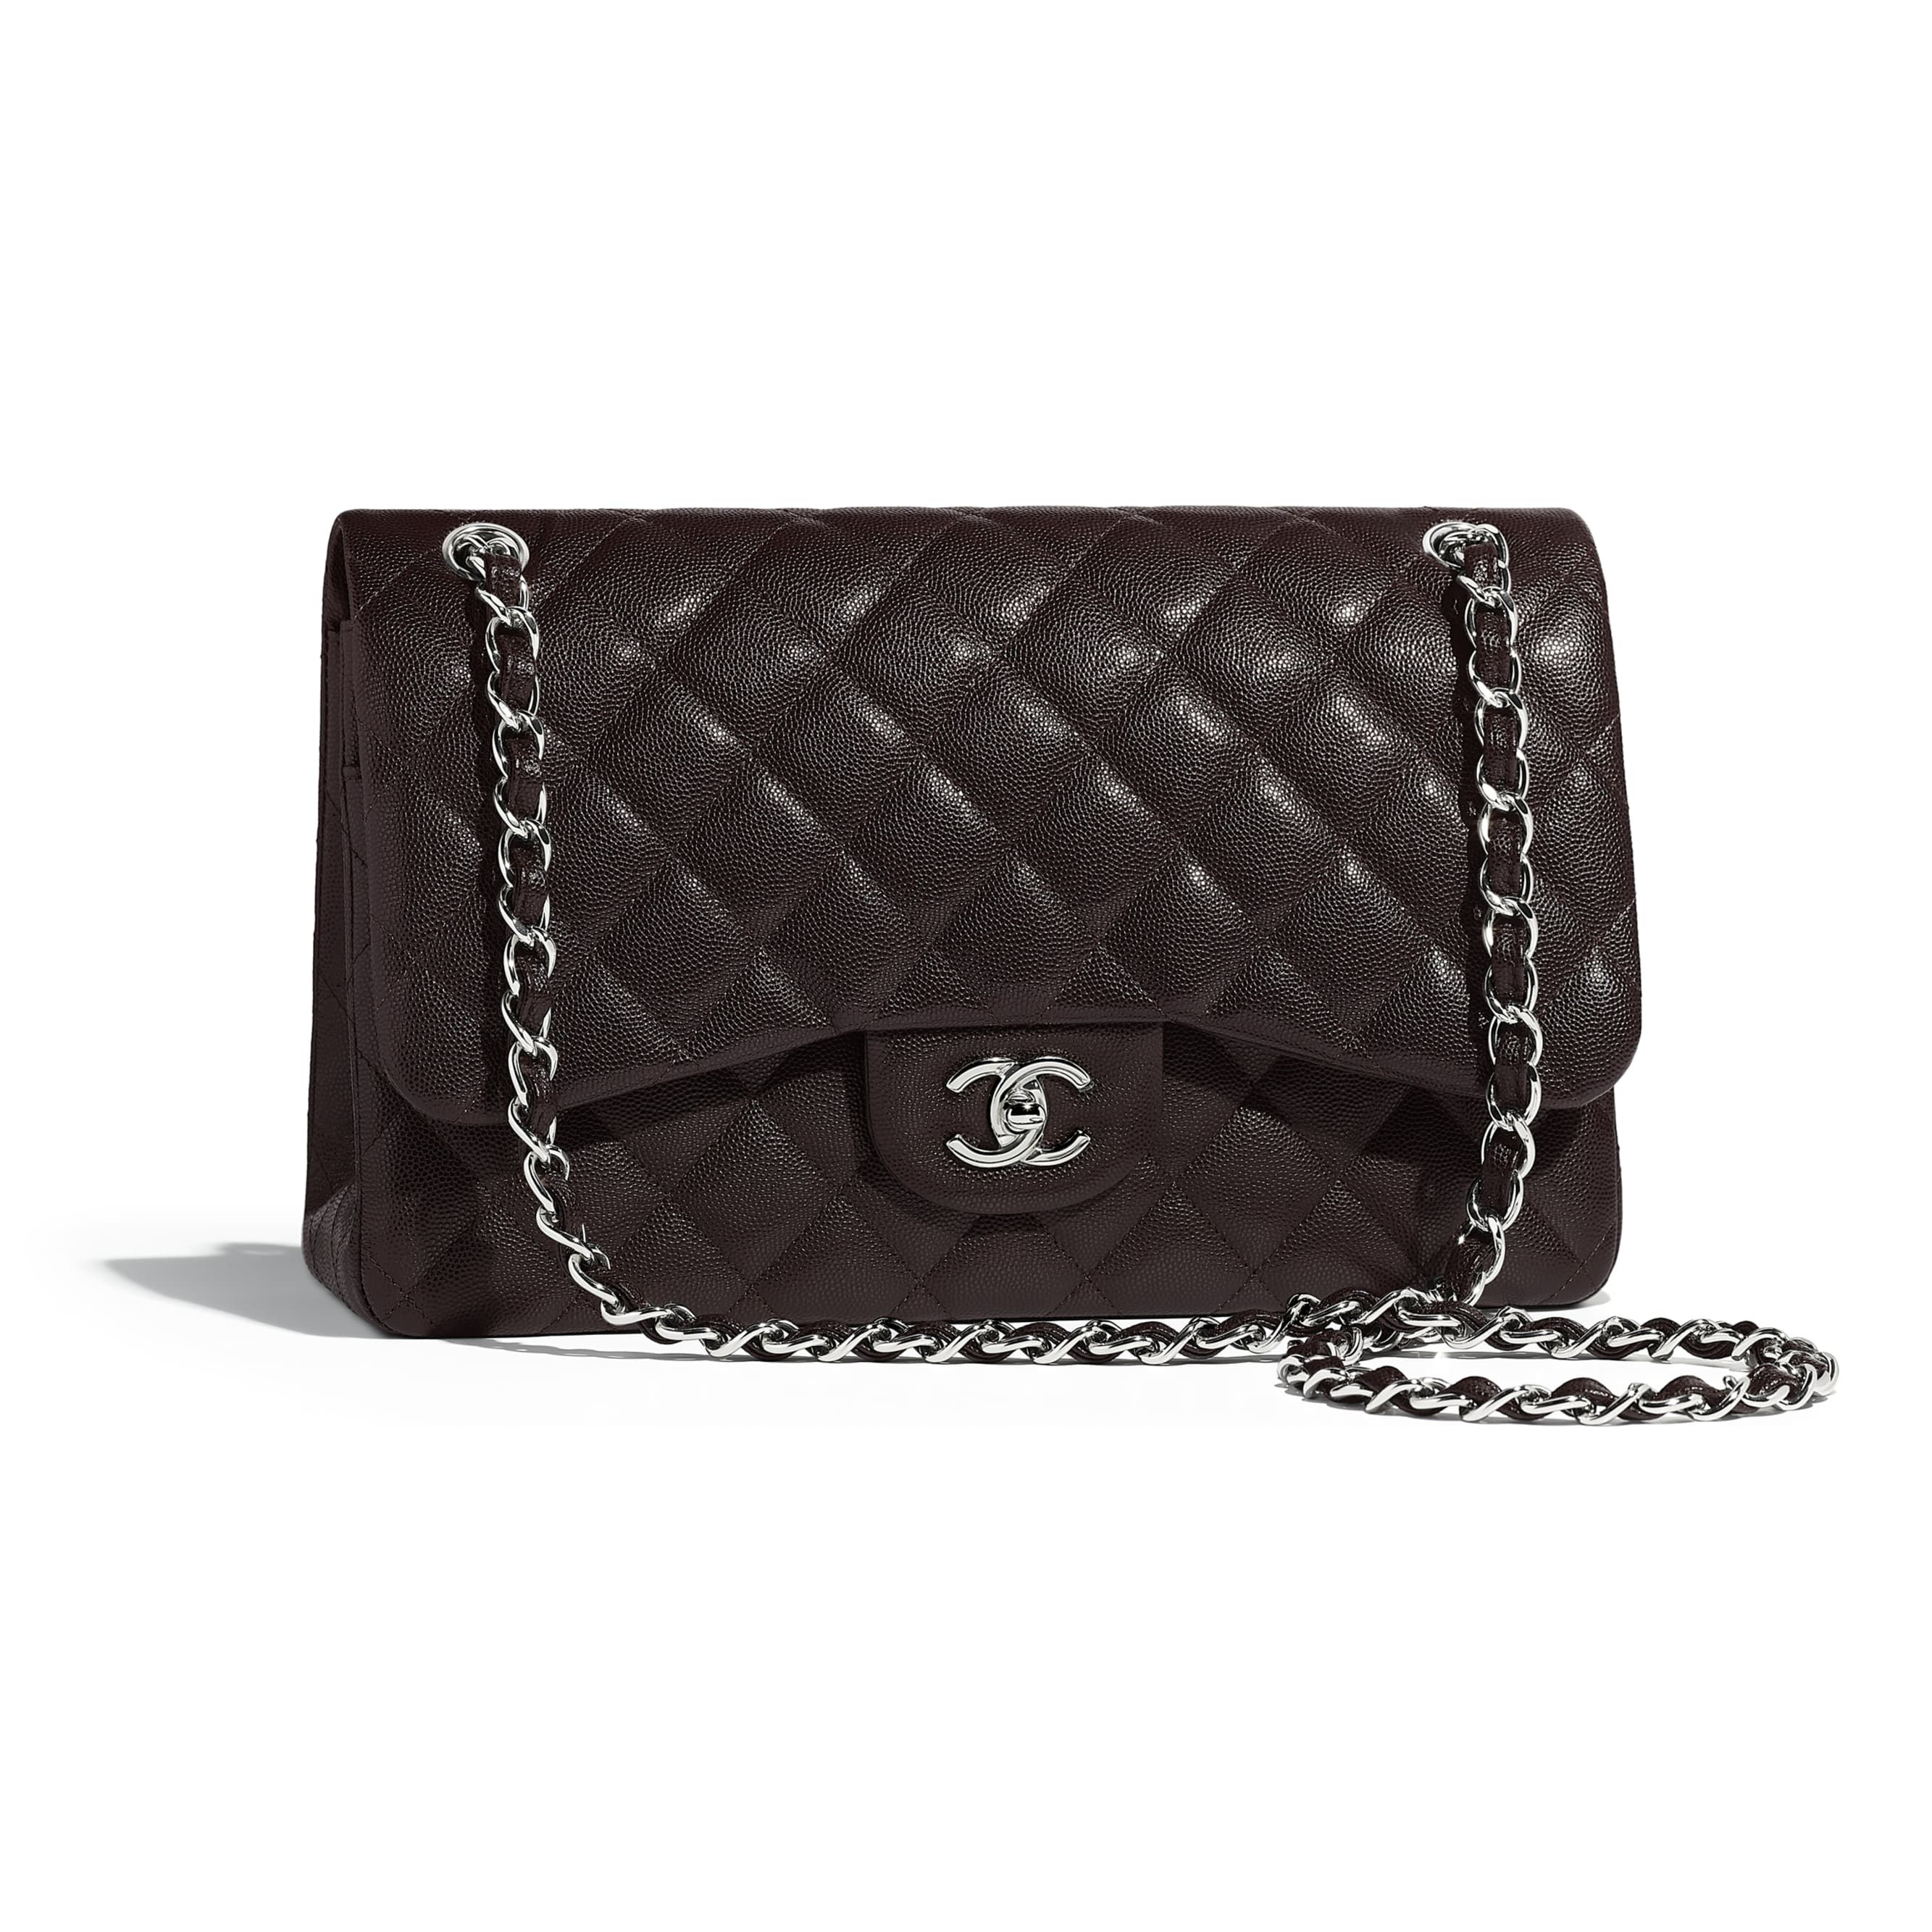 c6fbb2ced67b Chanel - PRE FW2018/19 | Grained calfskin & silver-tone metal brown large  classic handbag ($5,900)